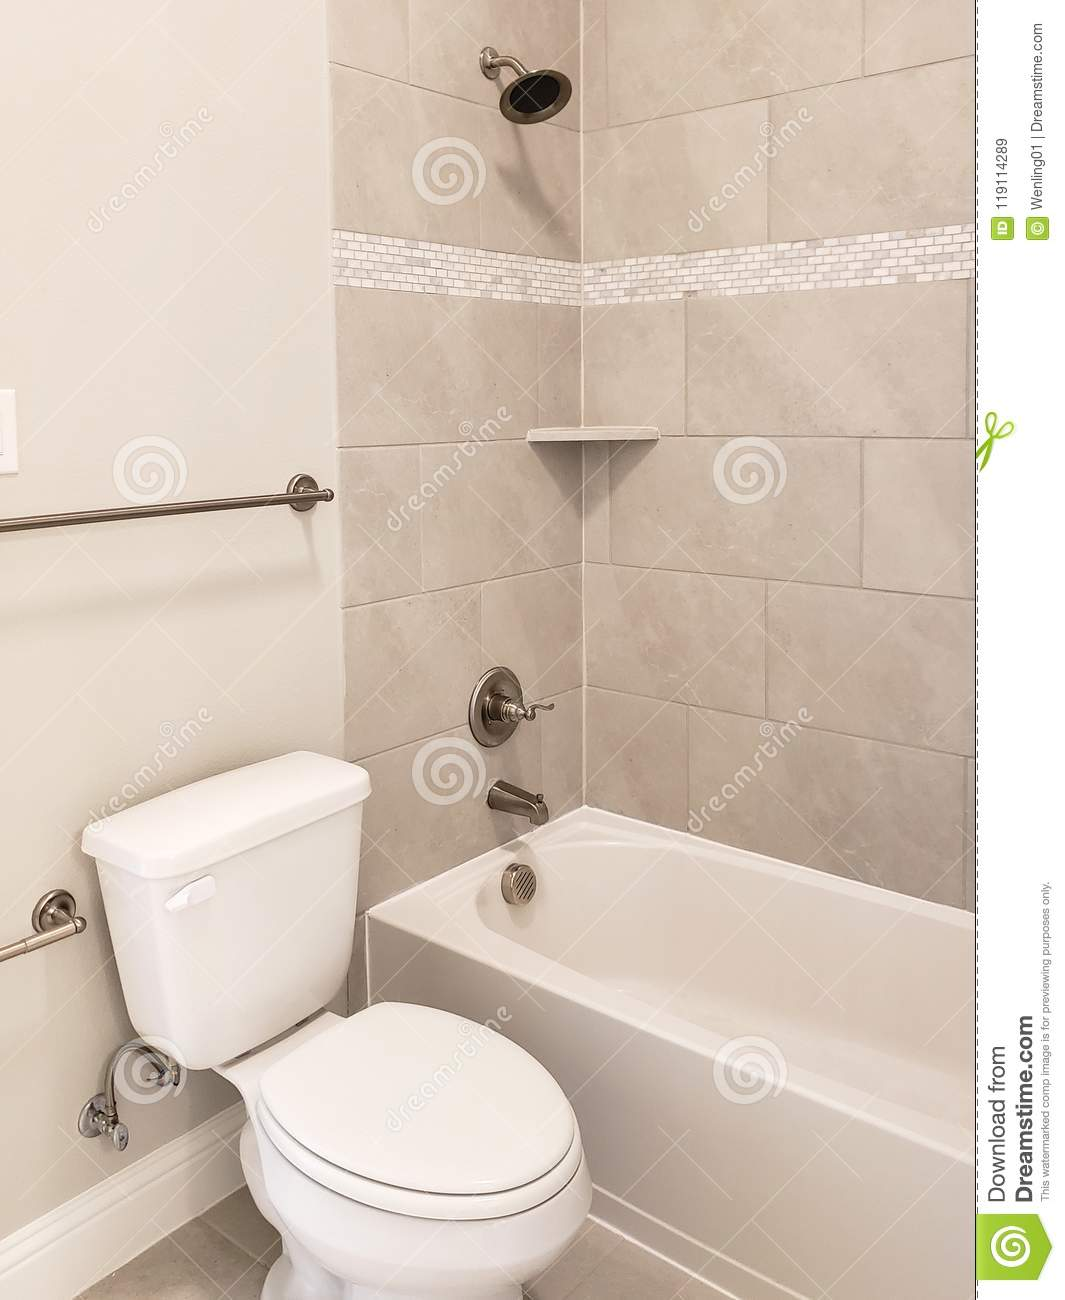 Bathroom Bathtub Toilet Design In A New House Stock Image - Image of ...